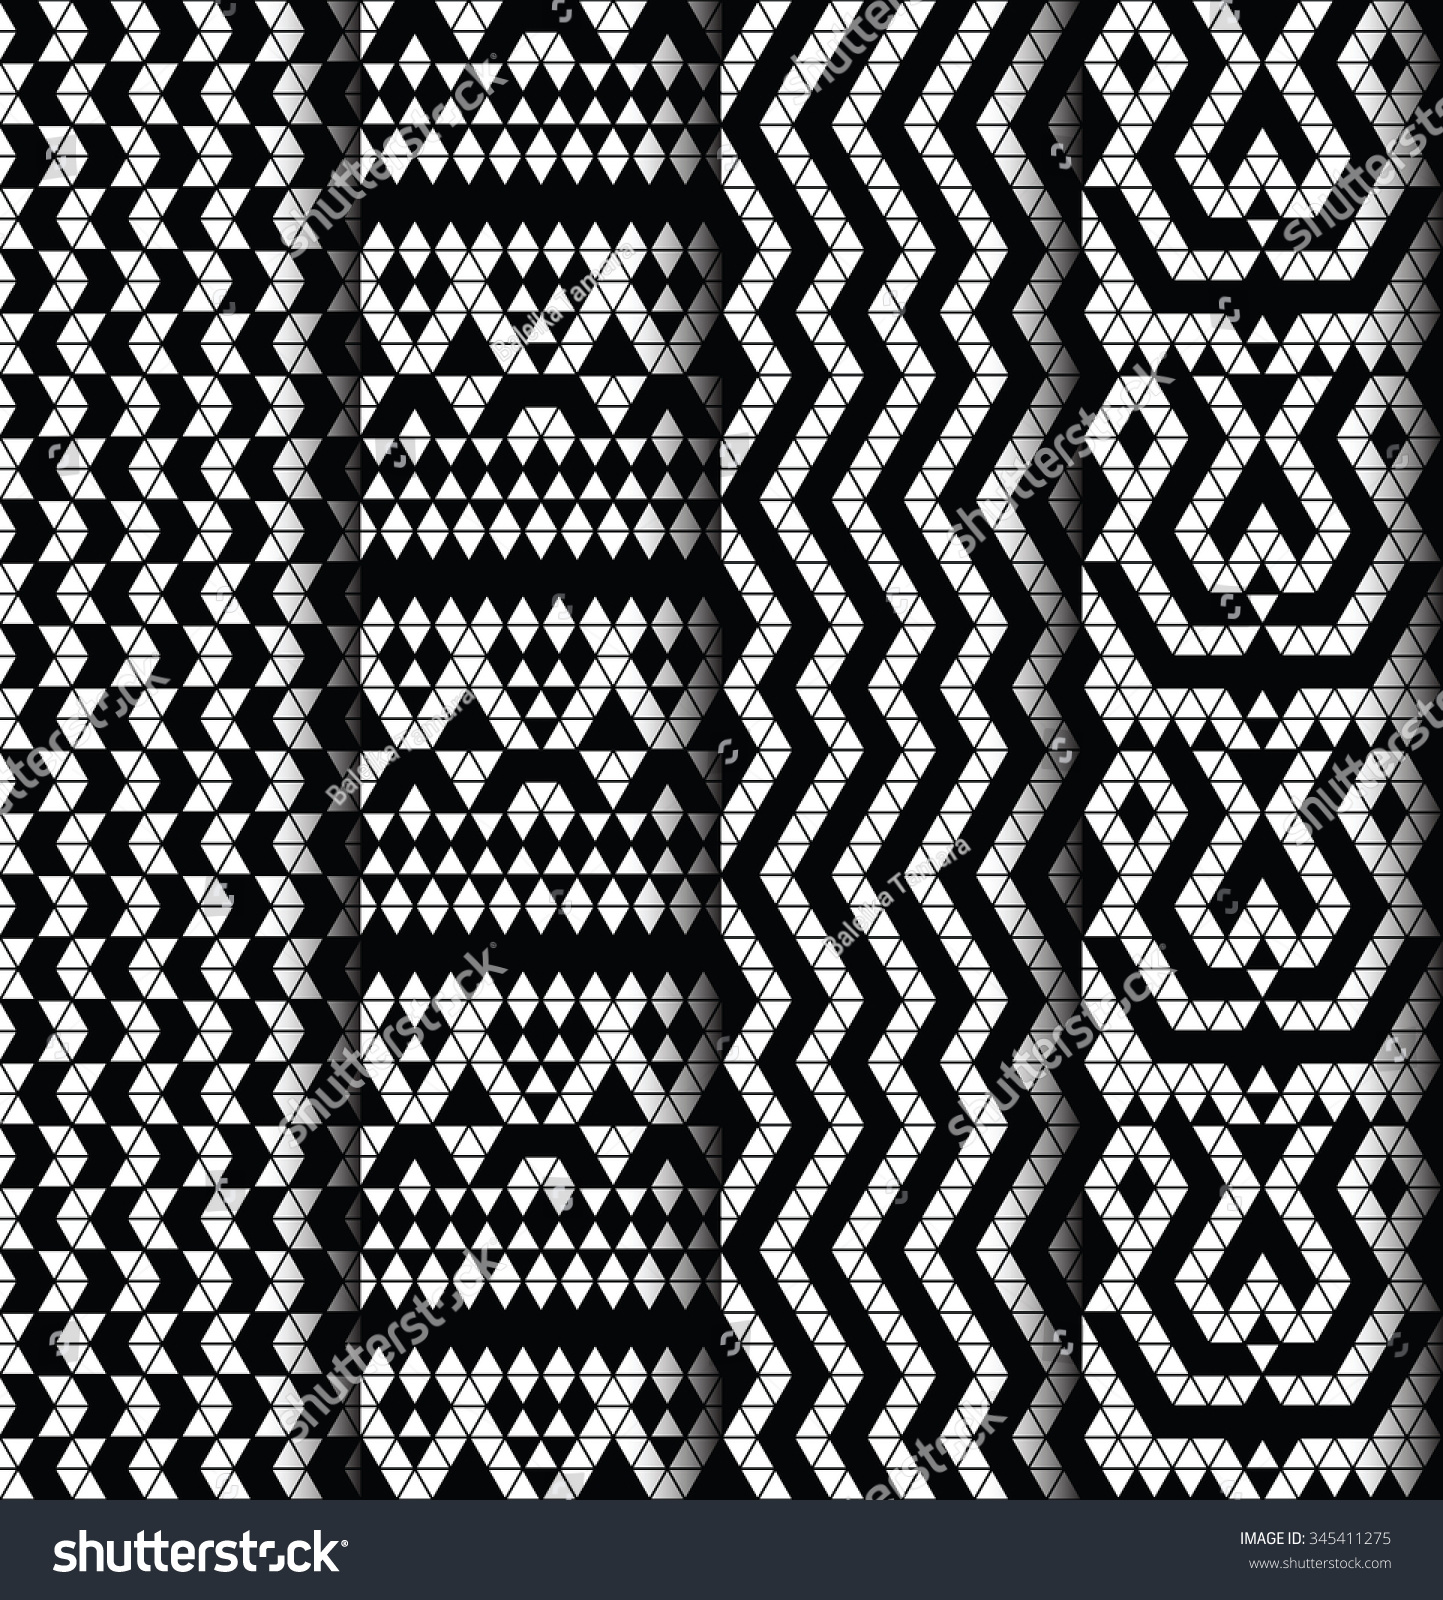 Tribal Monochrome Lace Patterns Trendy Modern Stock Vector 345411275 Shutterstock